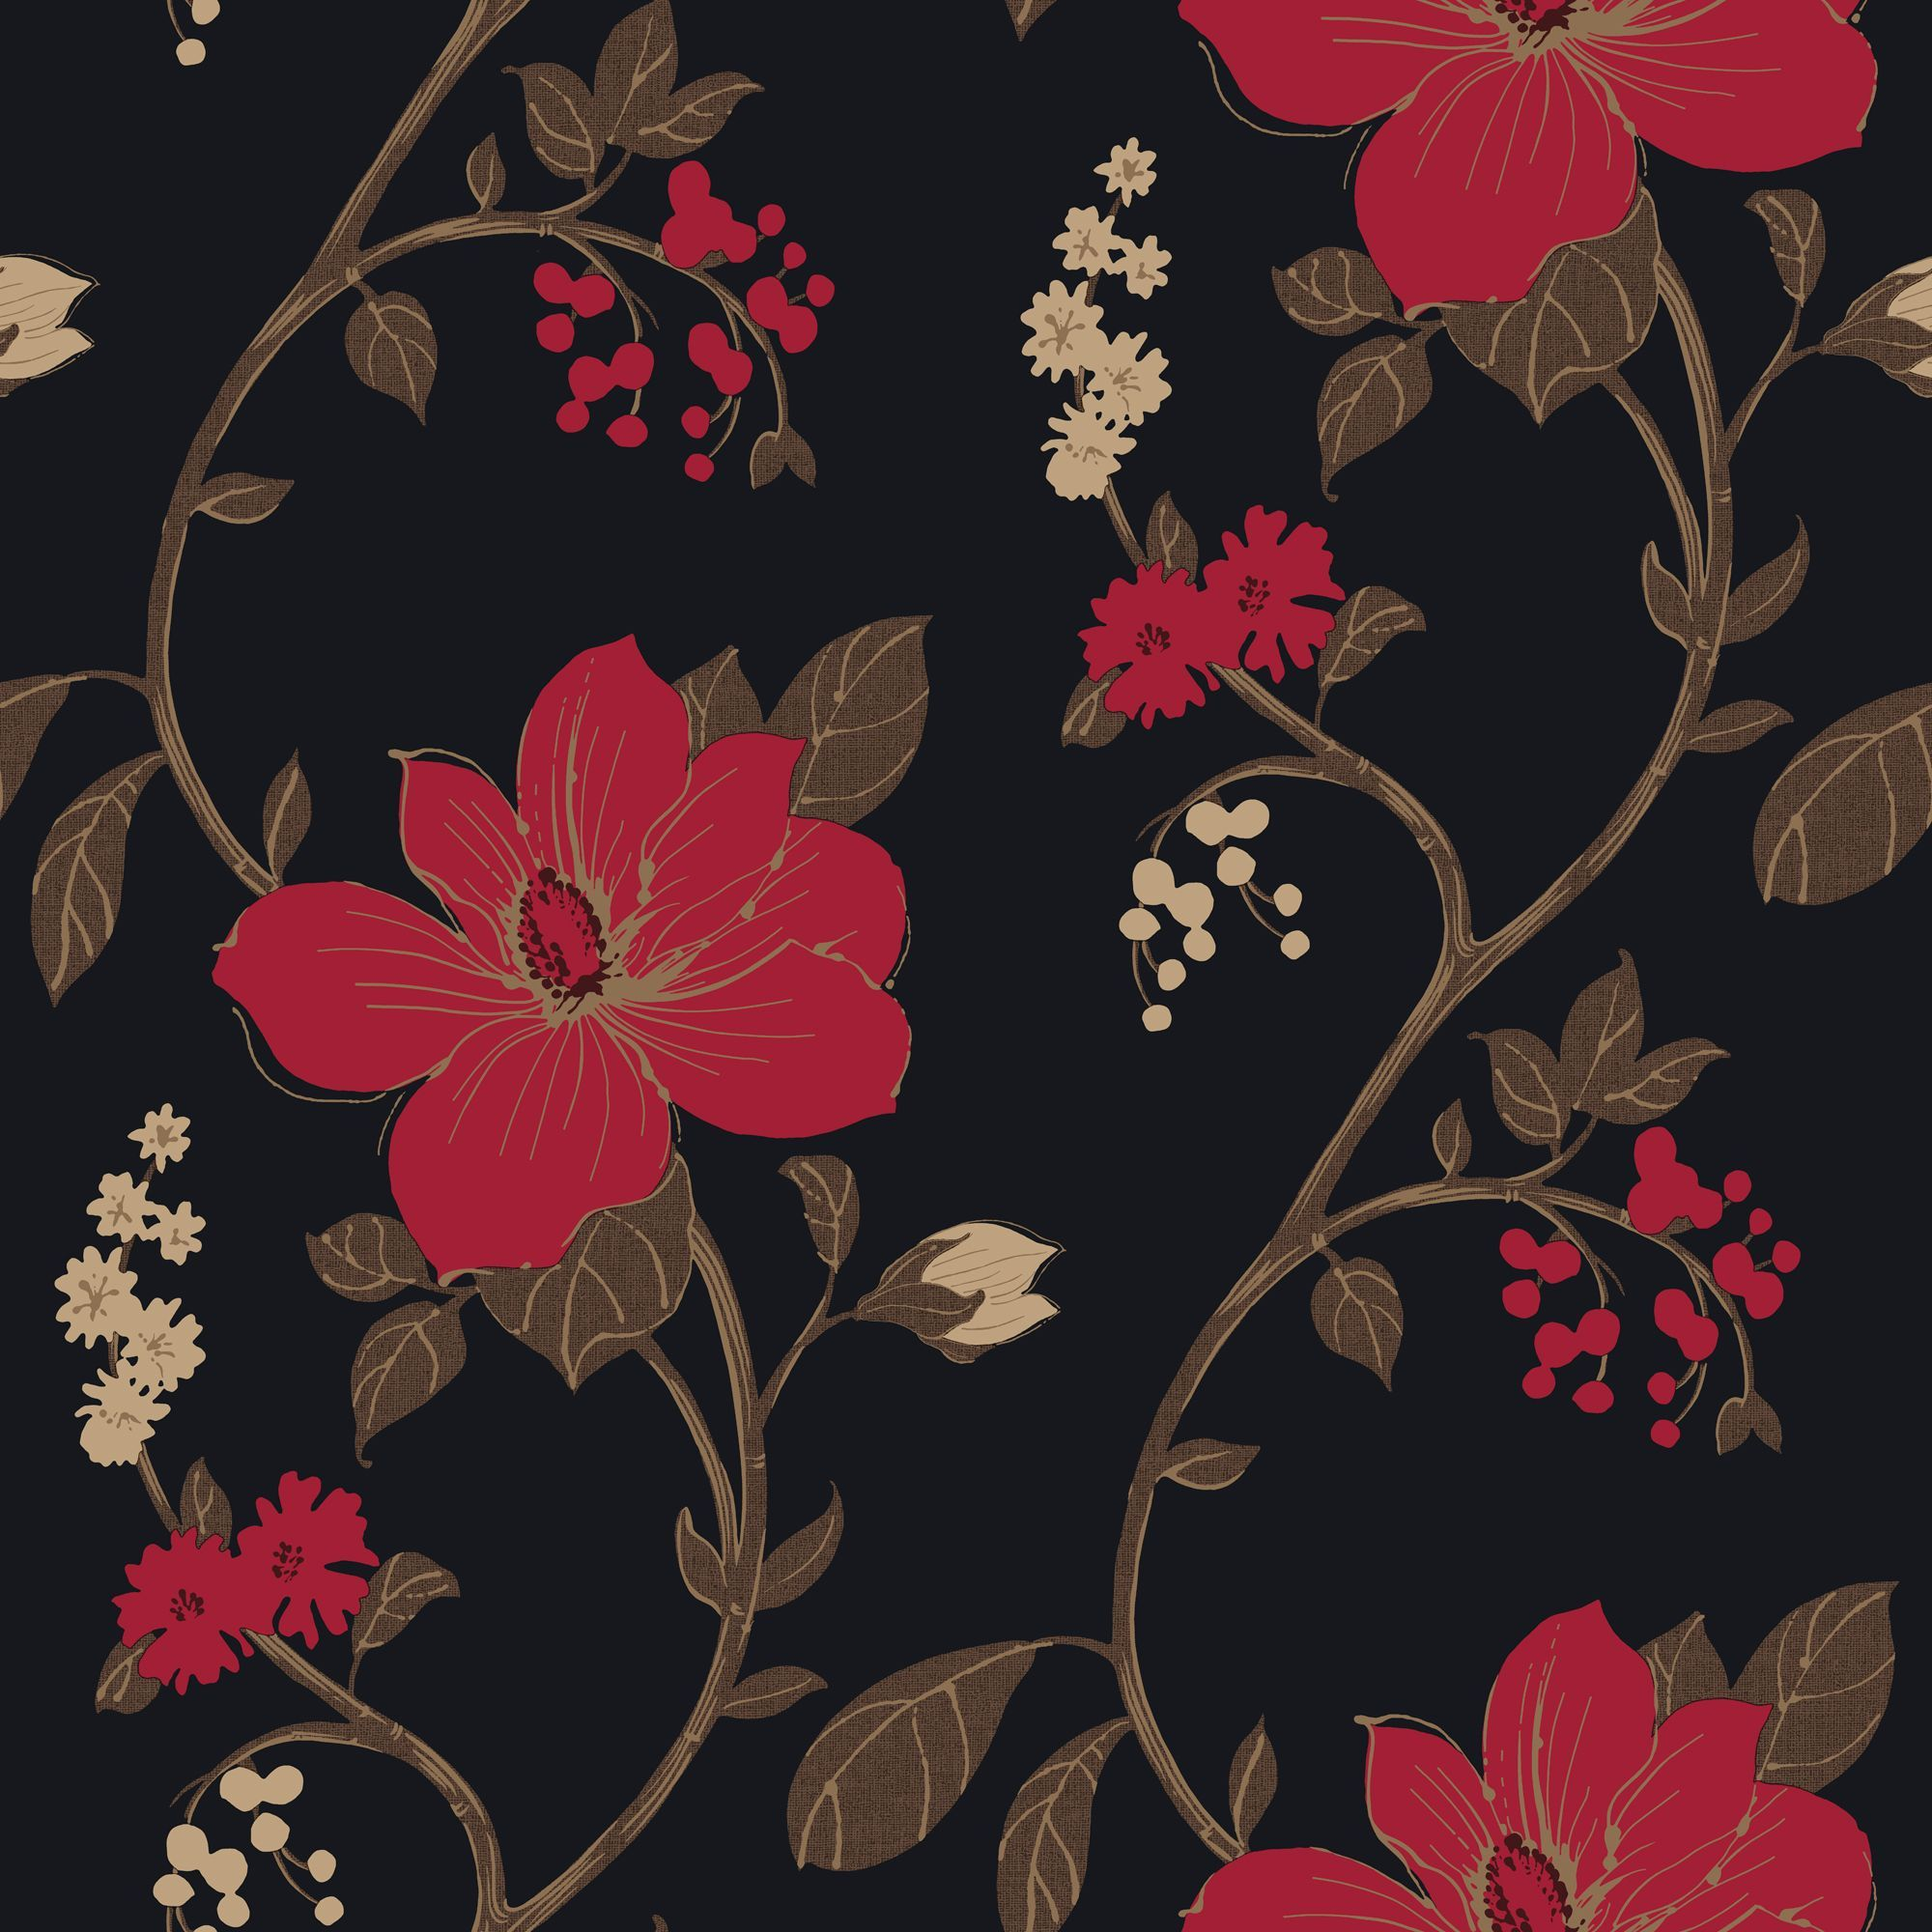 Diy supplies accessories diy at b q - Tatami Black Red Floral Mica Wallpaper B Q For All Your Home And Garden Supplies And Advice On All The Latest Diy Trends